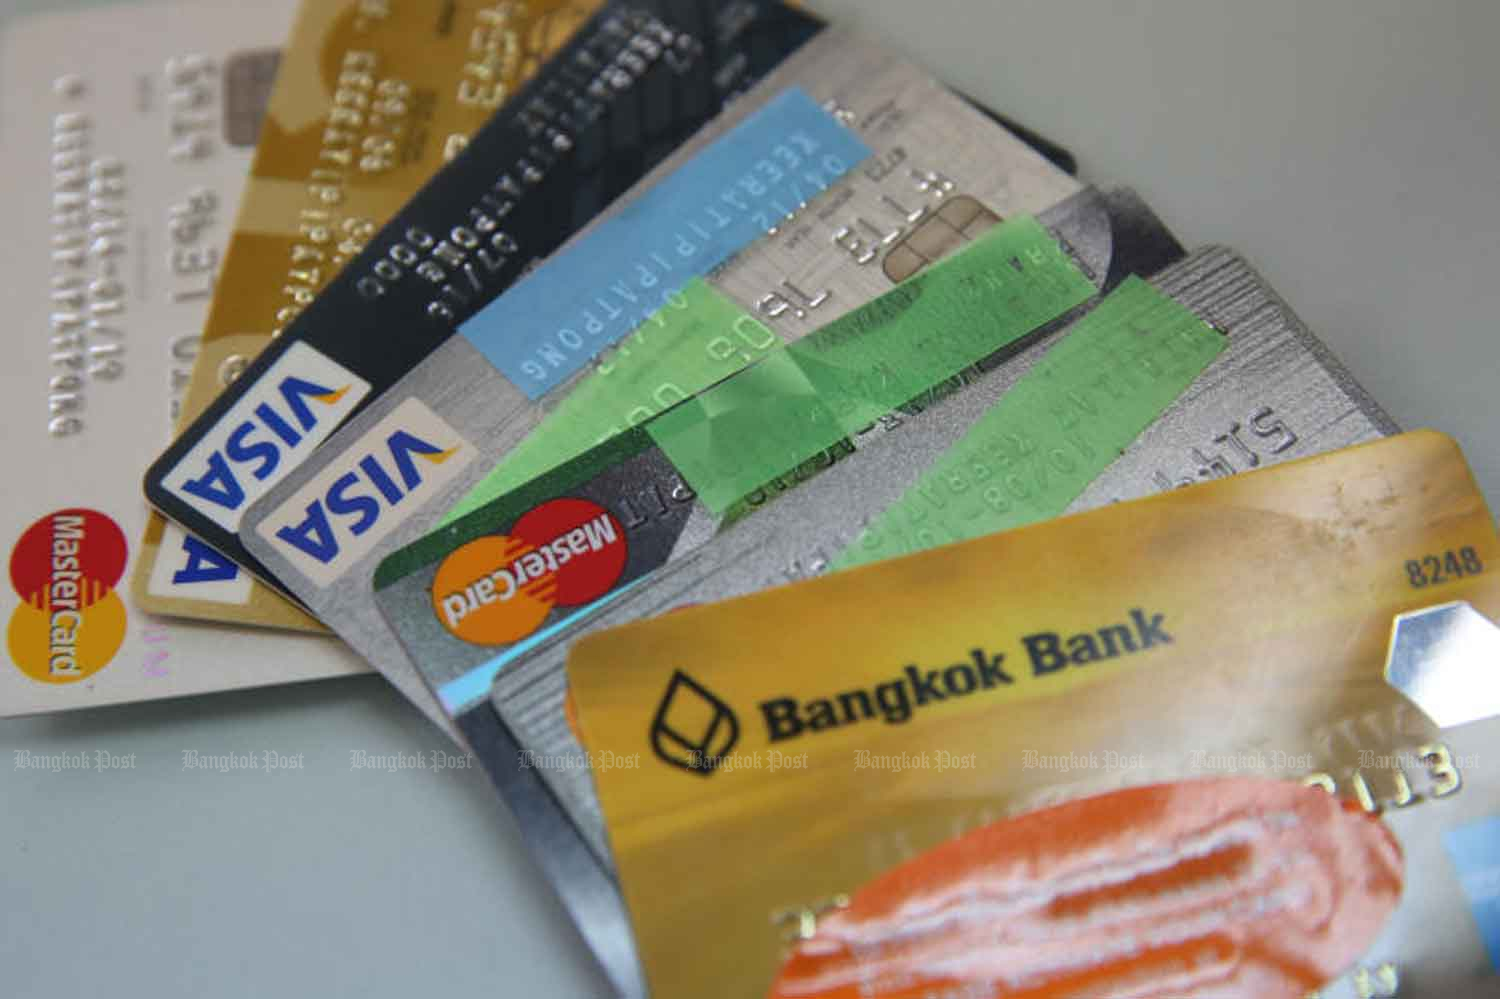 The central bank has set a maximum interest rate of 20% for credit card loans.